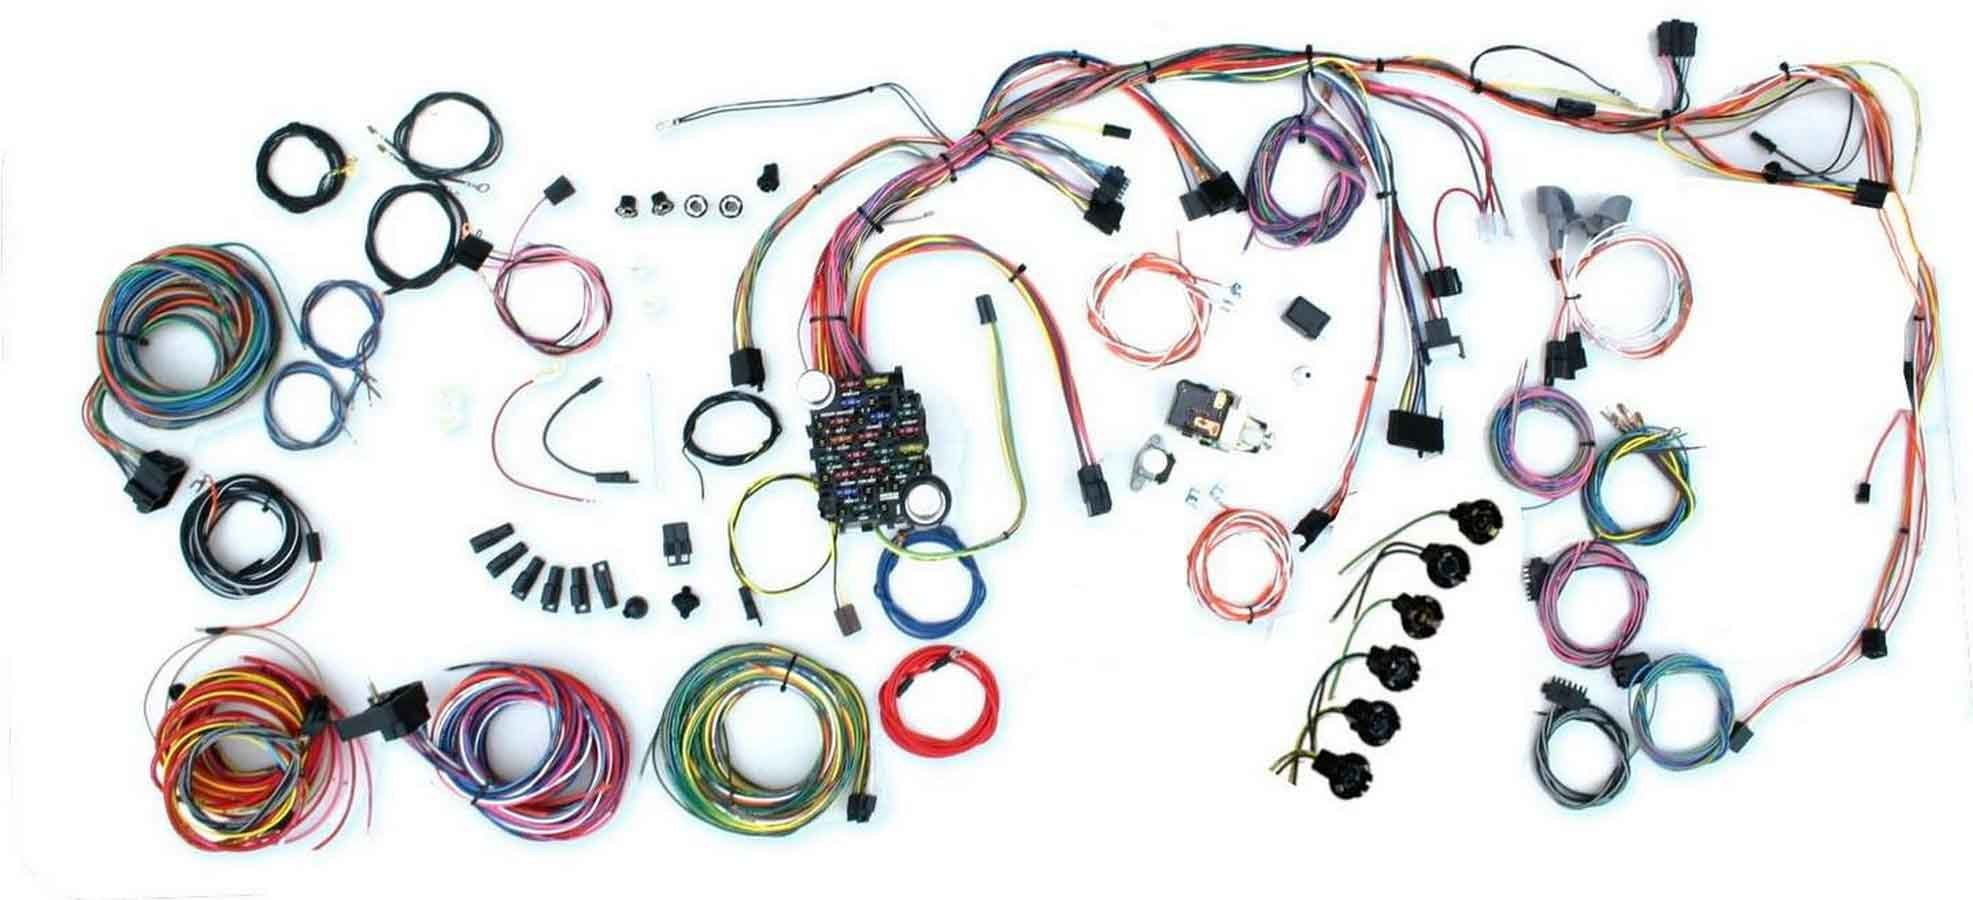 American Autowire 500878 Car Wiring Harness, Classic Update, Complete, Nova 1969-72, Kit